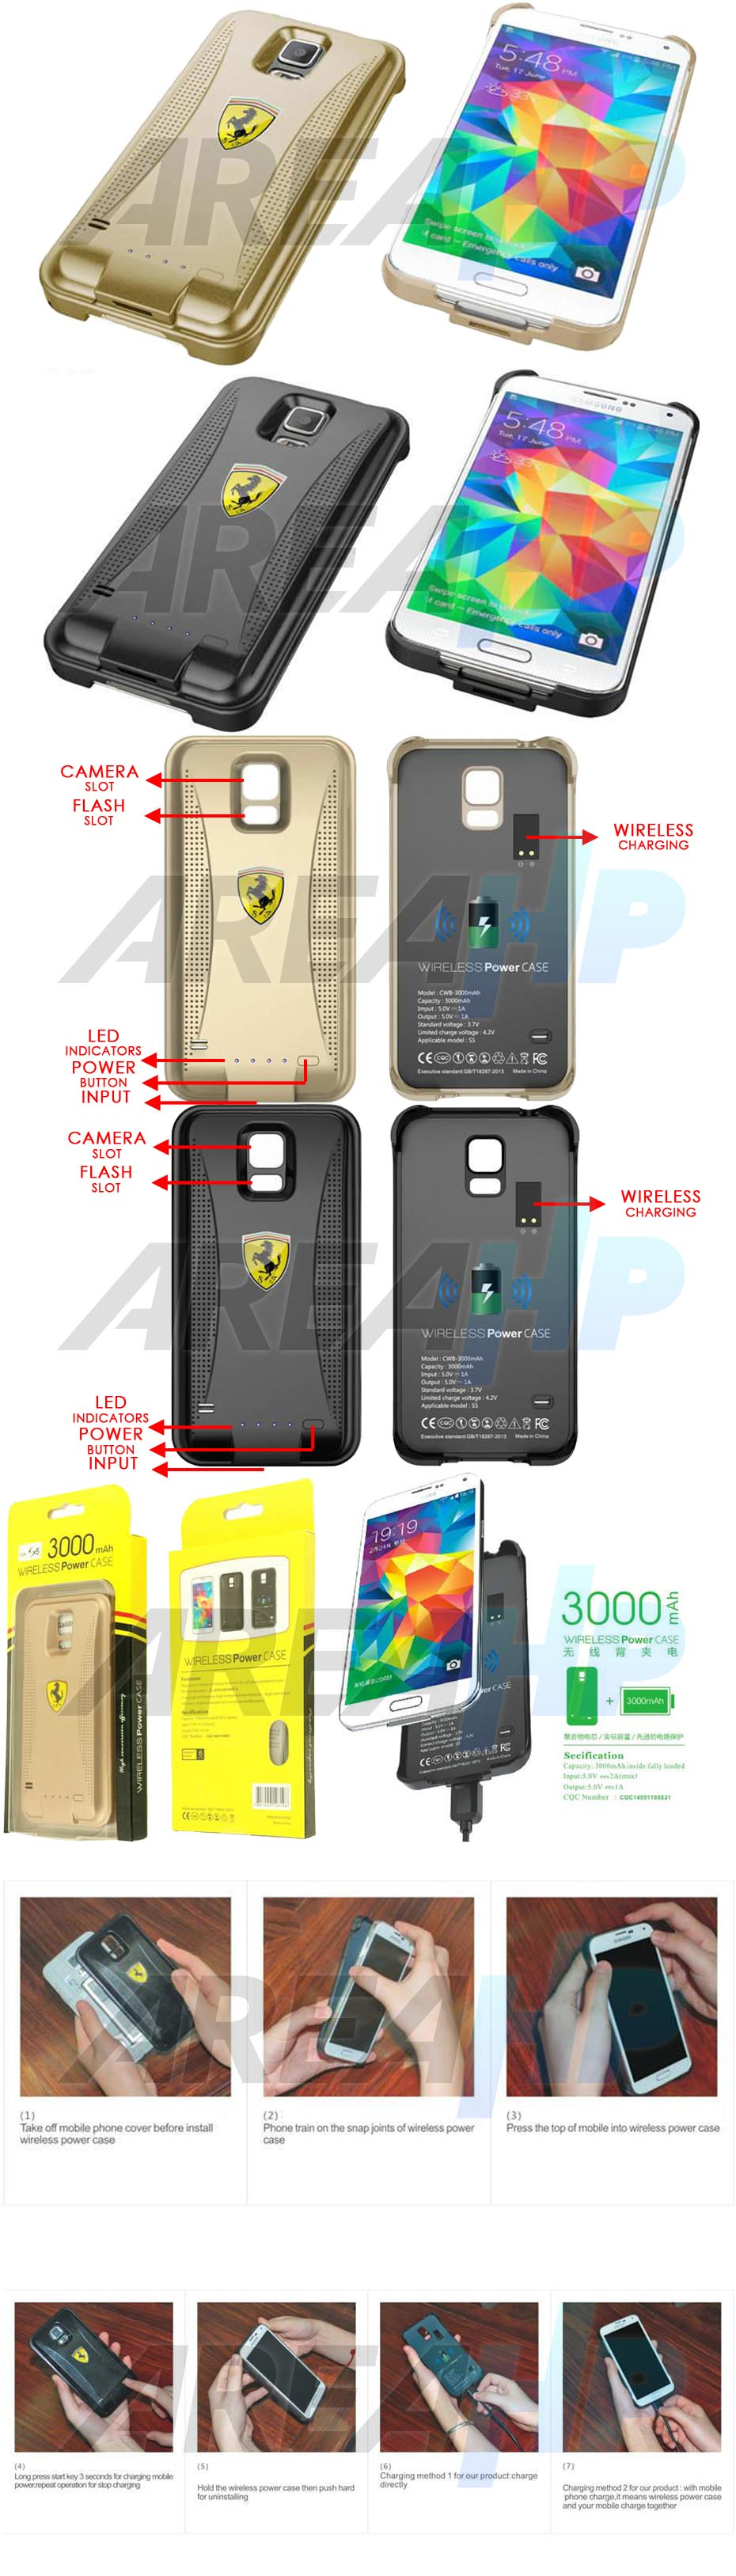 Keva Power Case Wireless 3000mAh For Samsung Galaxy S5 SM-G900 Overview